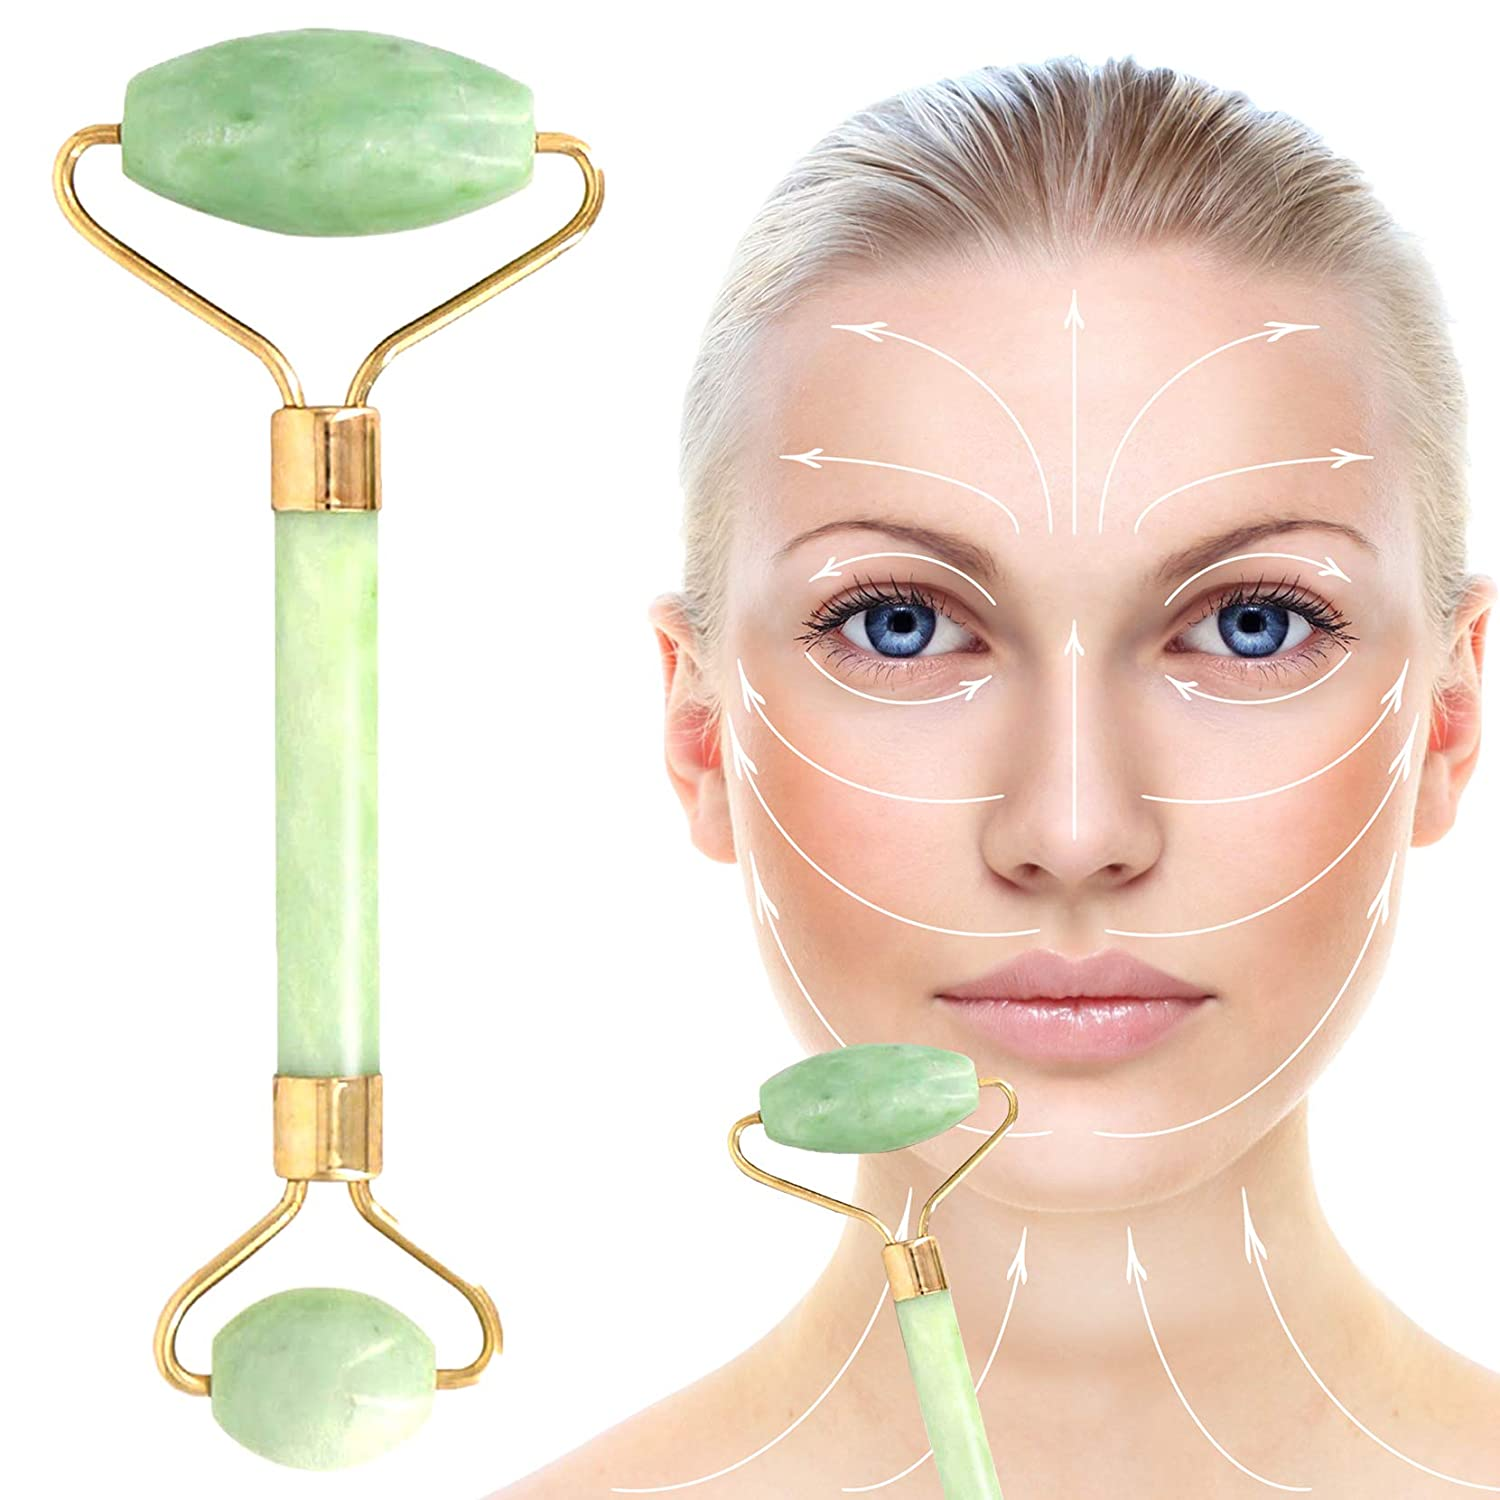 Amazon.com: Chi Jade Roller for Face - 100% Natural Jade Face Roller -  Facial and Neck Massage Tool for Anti-Aging, Puffiness, Wrinkles, Firming,  ...